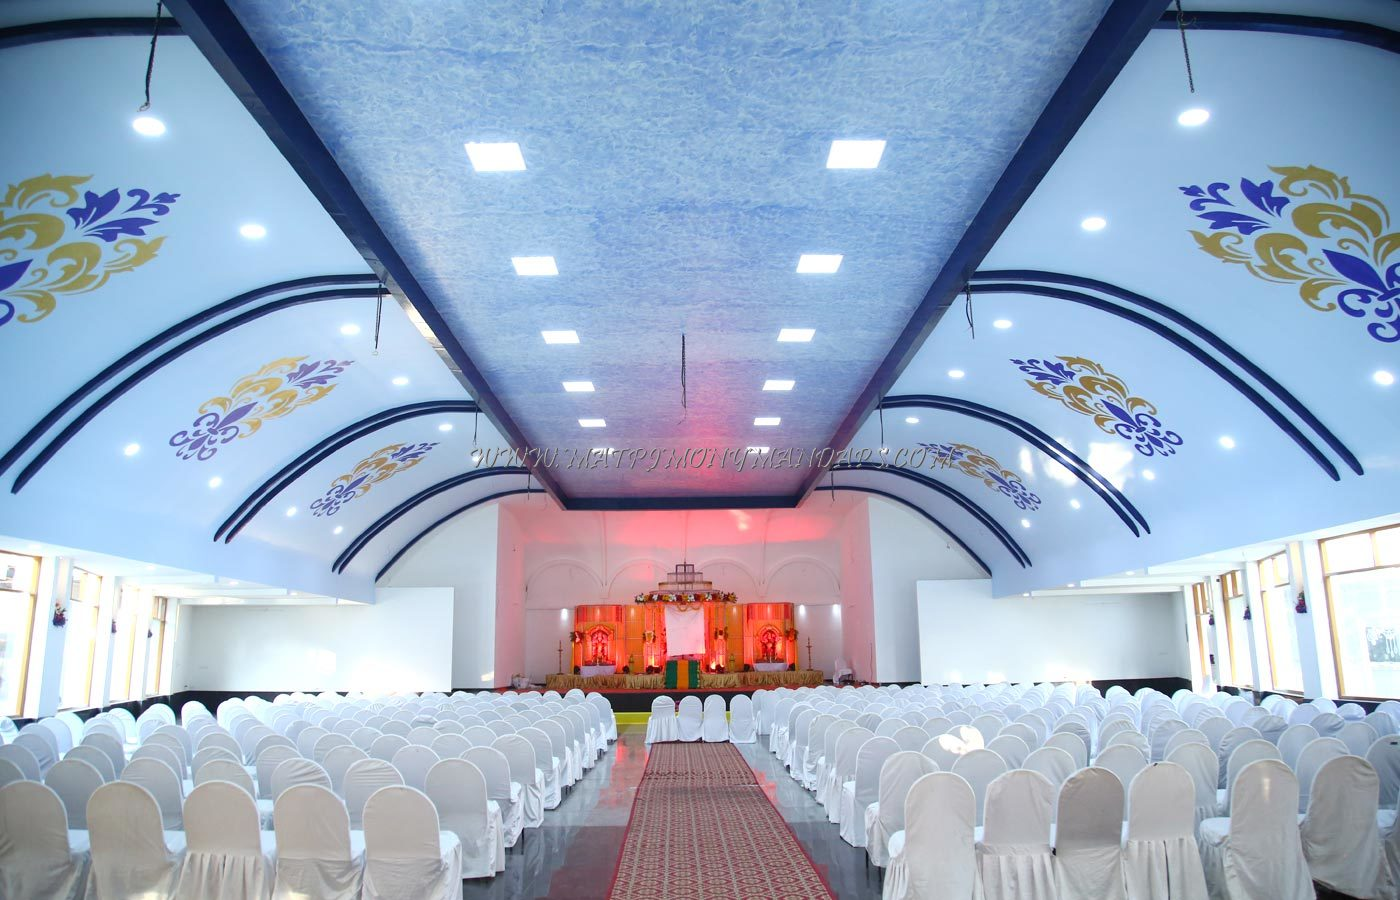 Find the availability of the Nandanavana Convention Hall in bannerghatta road, Bangalore and avail special offers